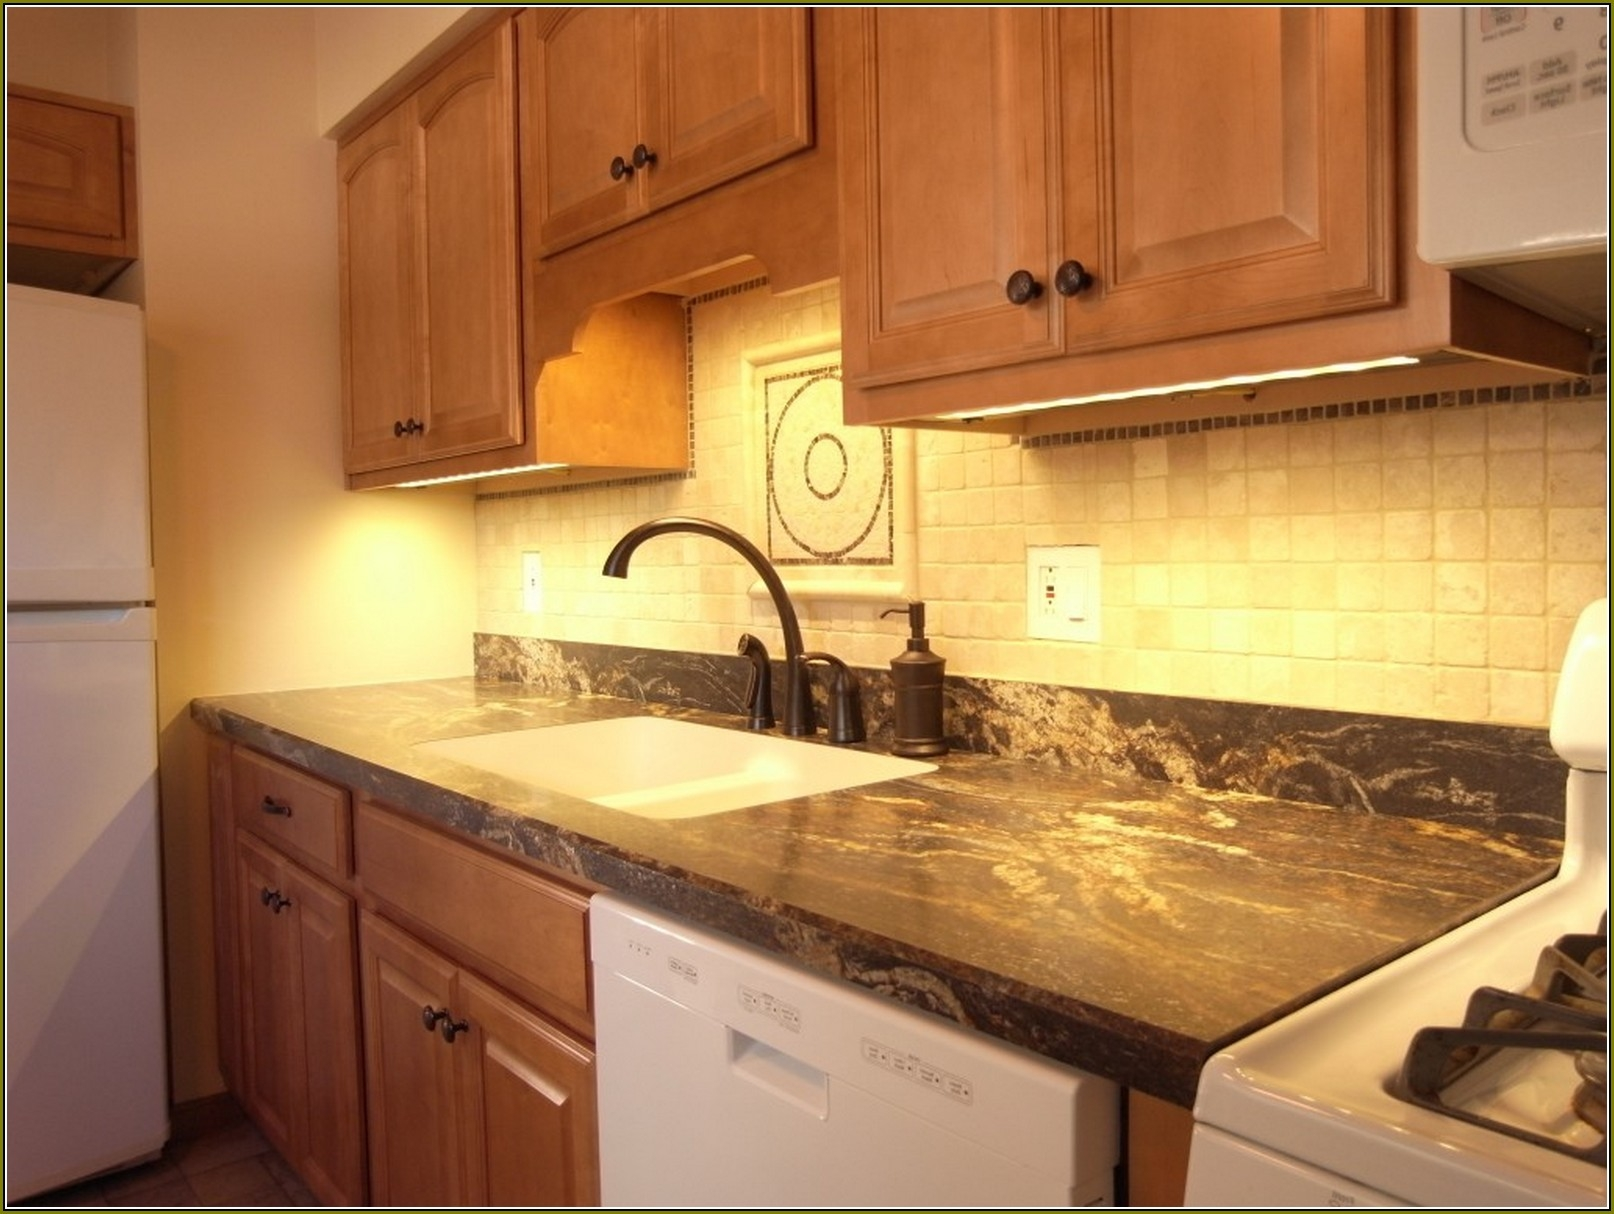 Undermount Lighting For Kitchen Cabinets Battery Powered